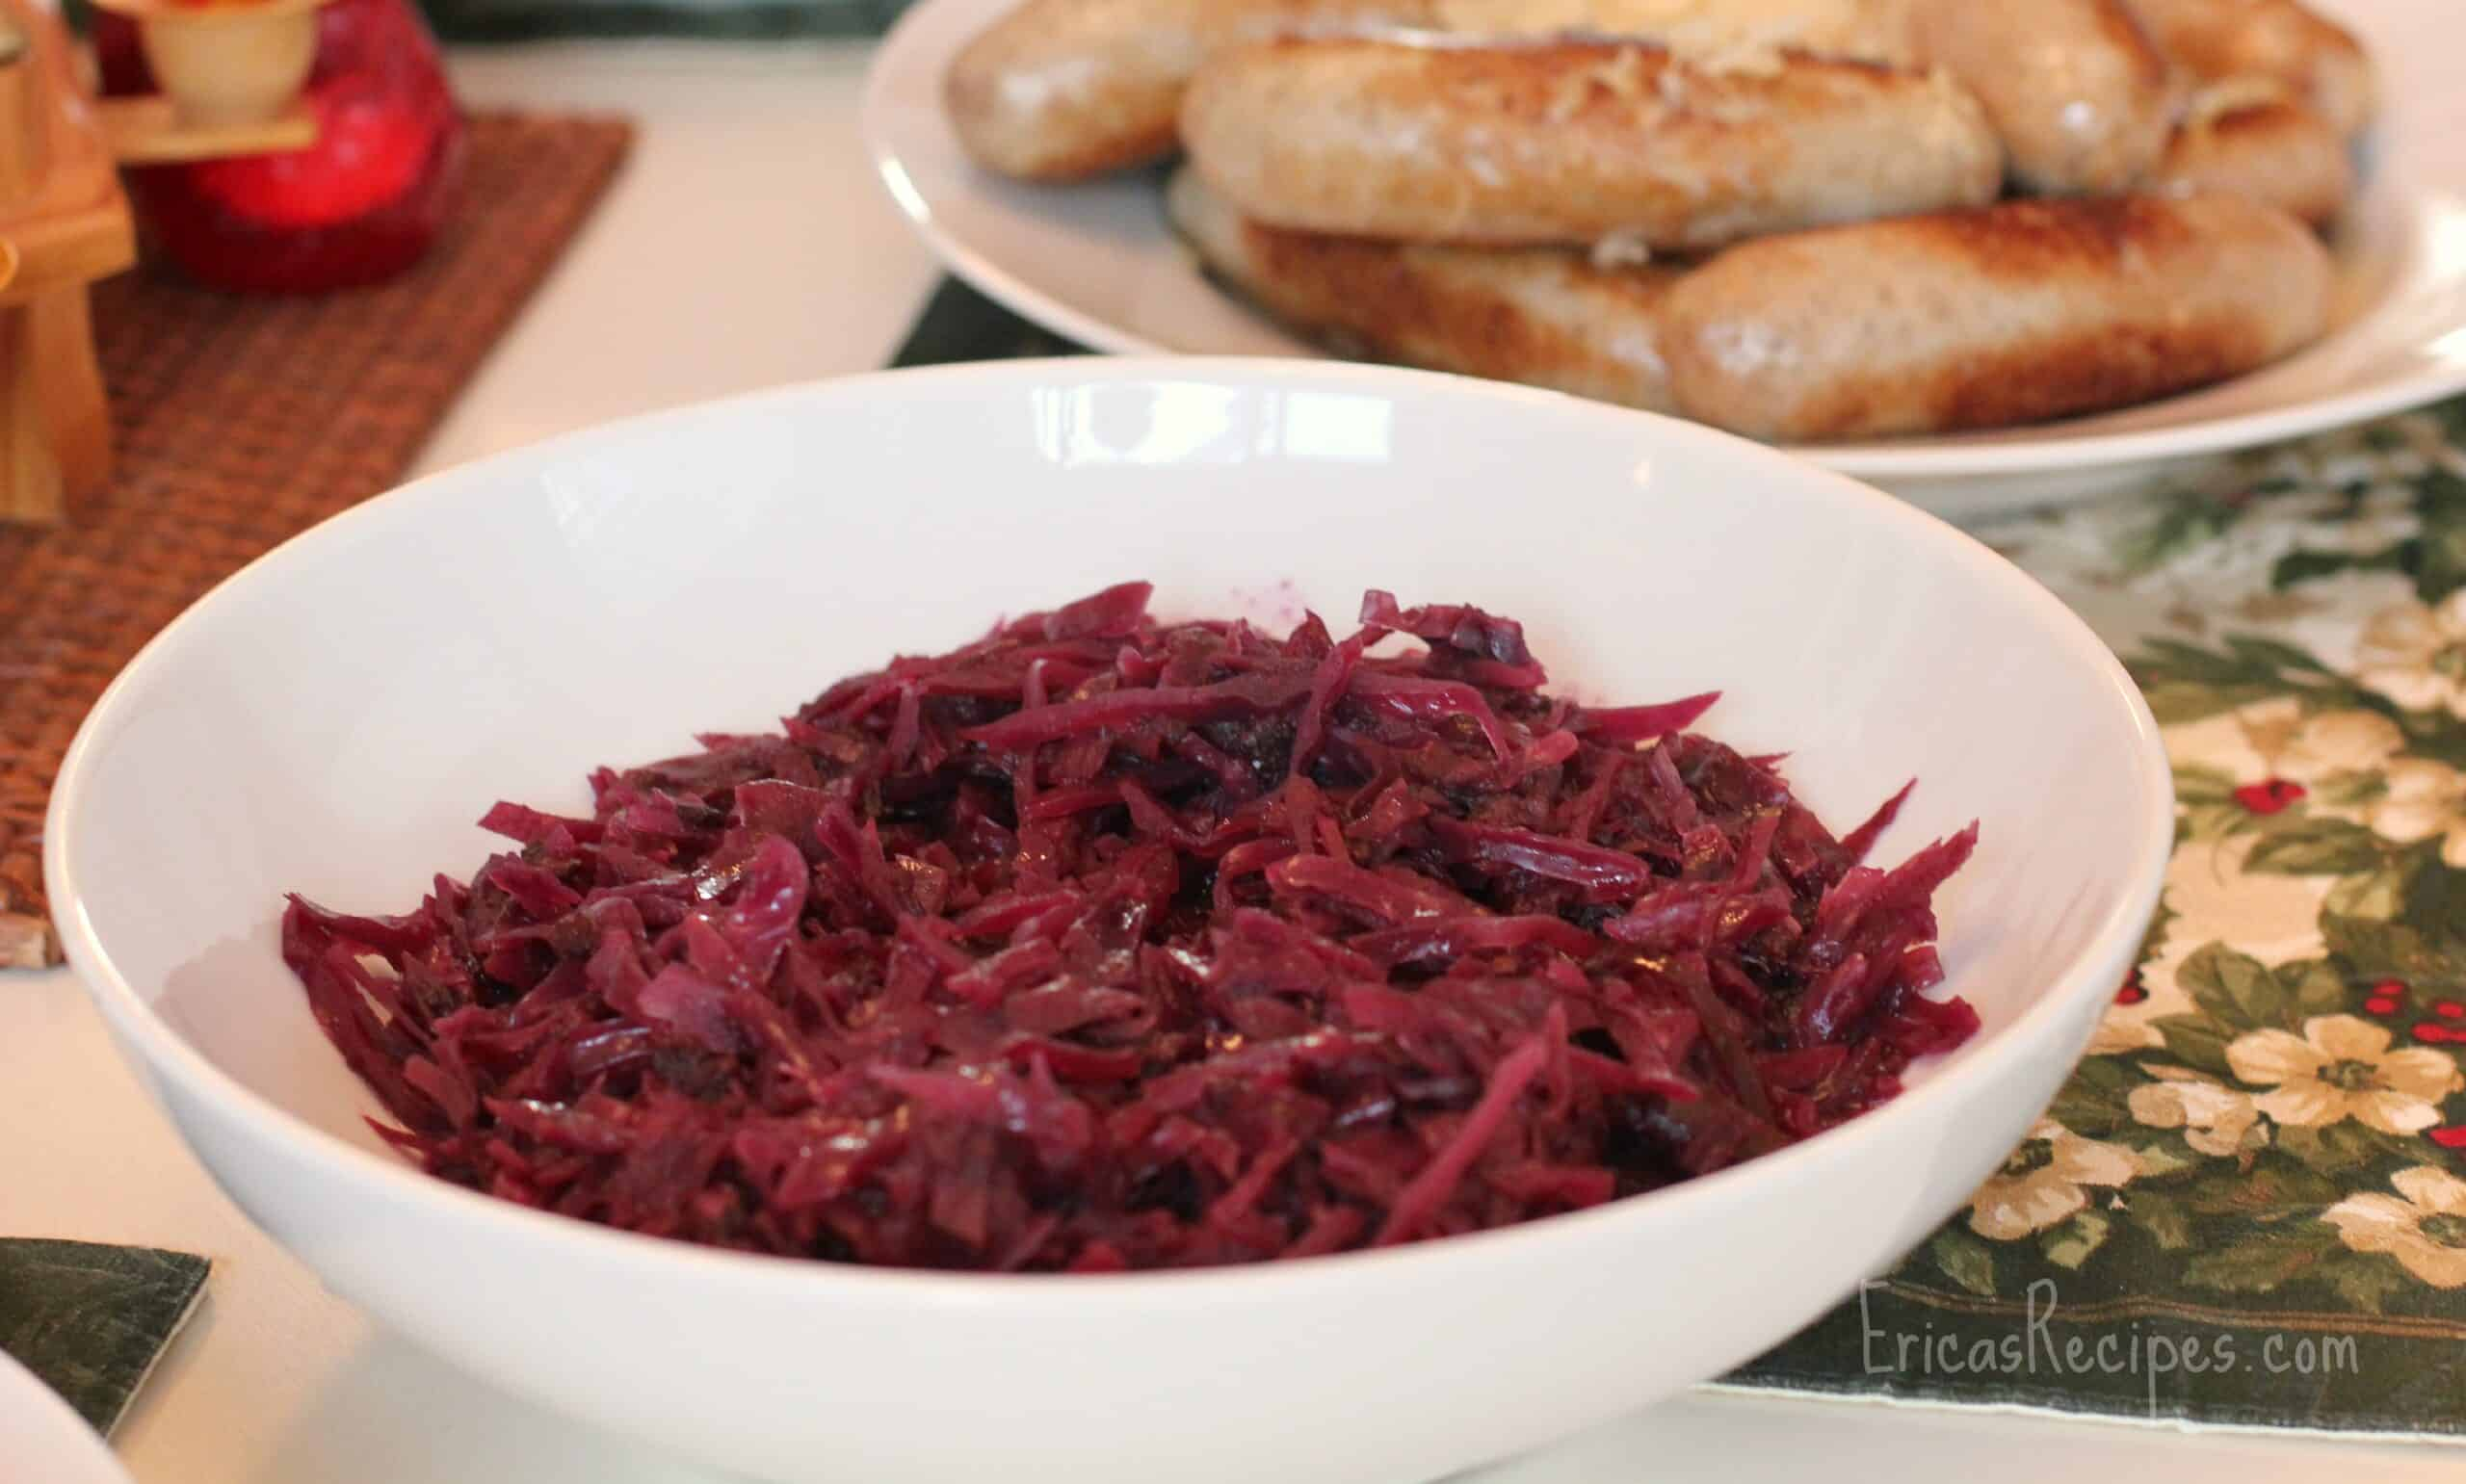 braised red cabbage recipe - photo #15